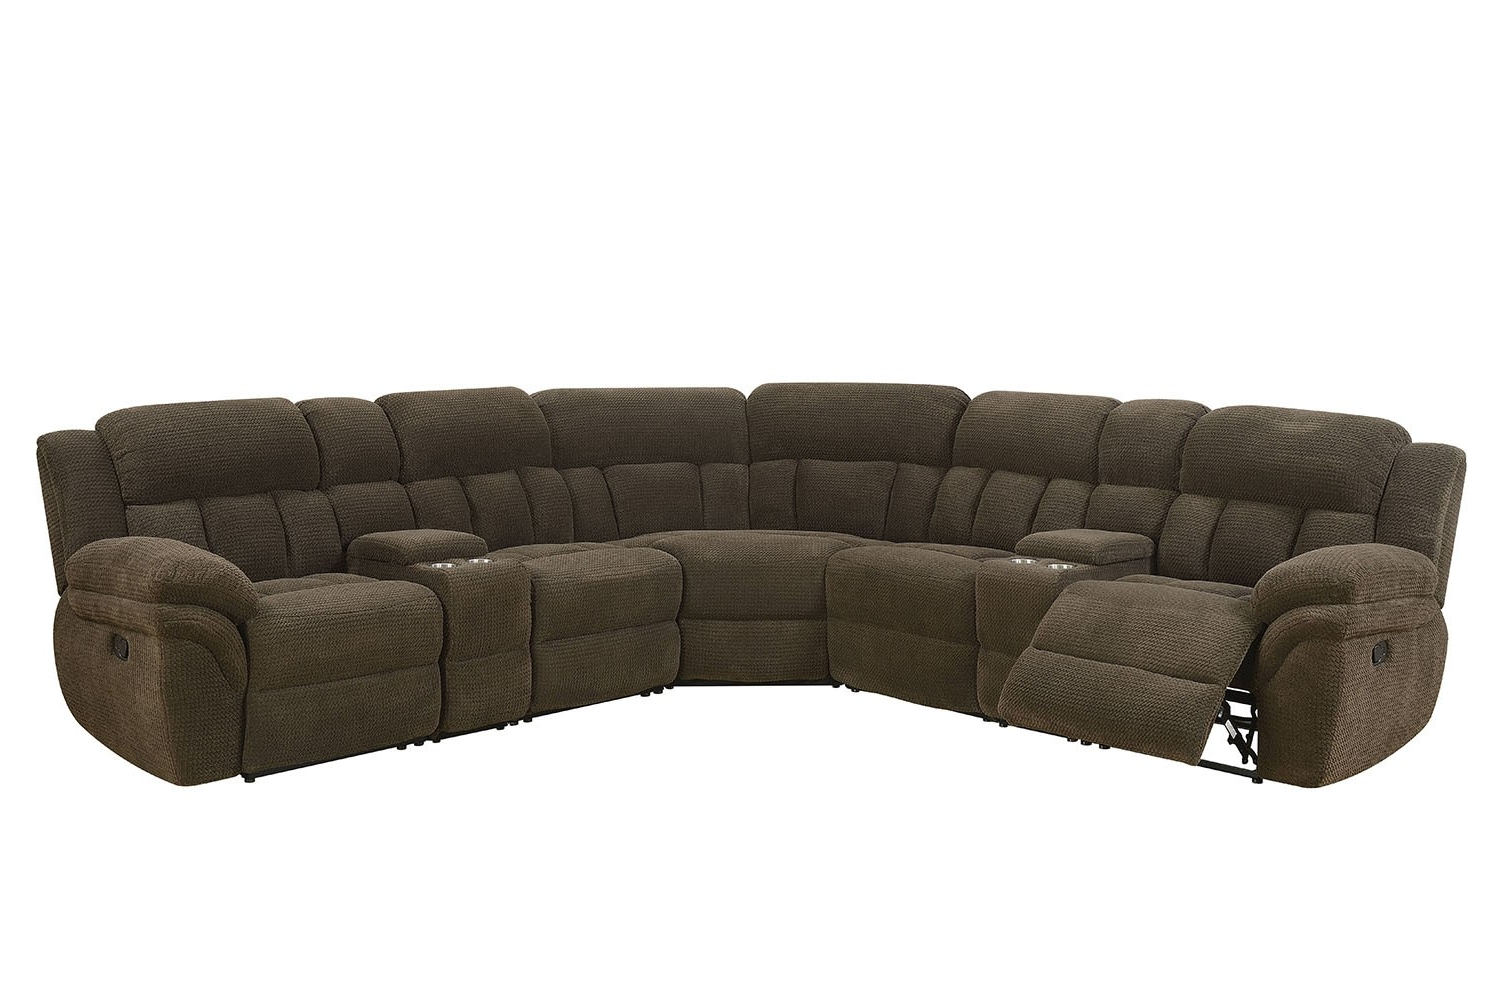 Latest Aspen 2 Piece Sleeper Sectionals With Laf Chaise With Sectional Sofas (View 11 of 20)